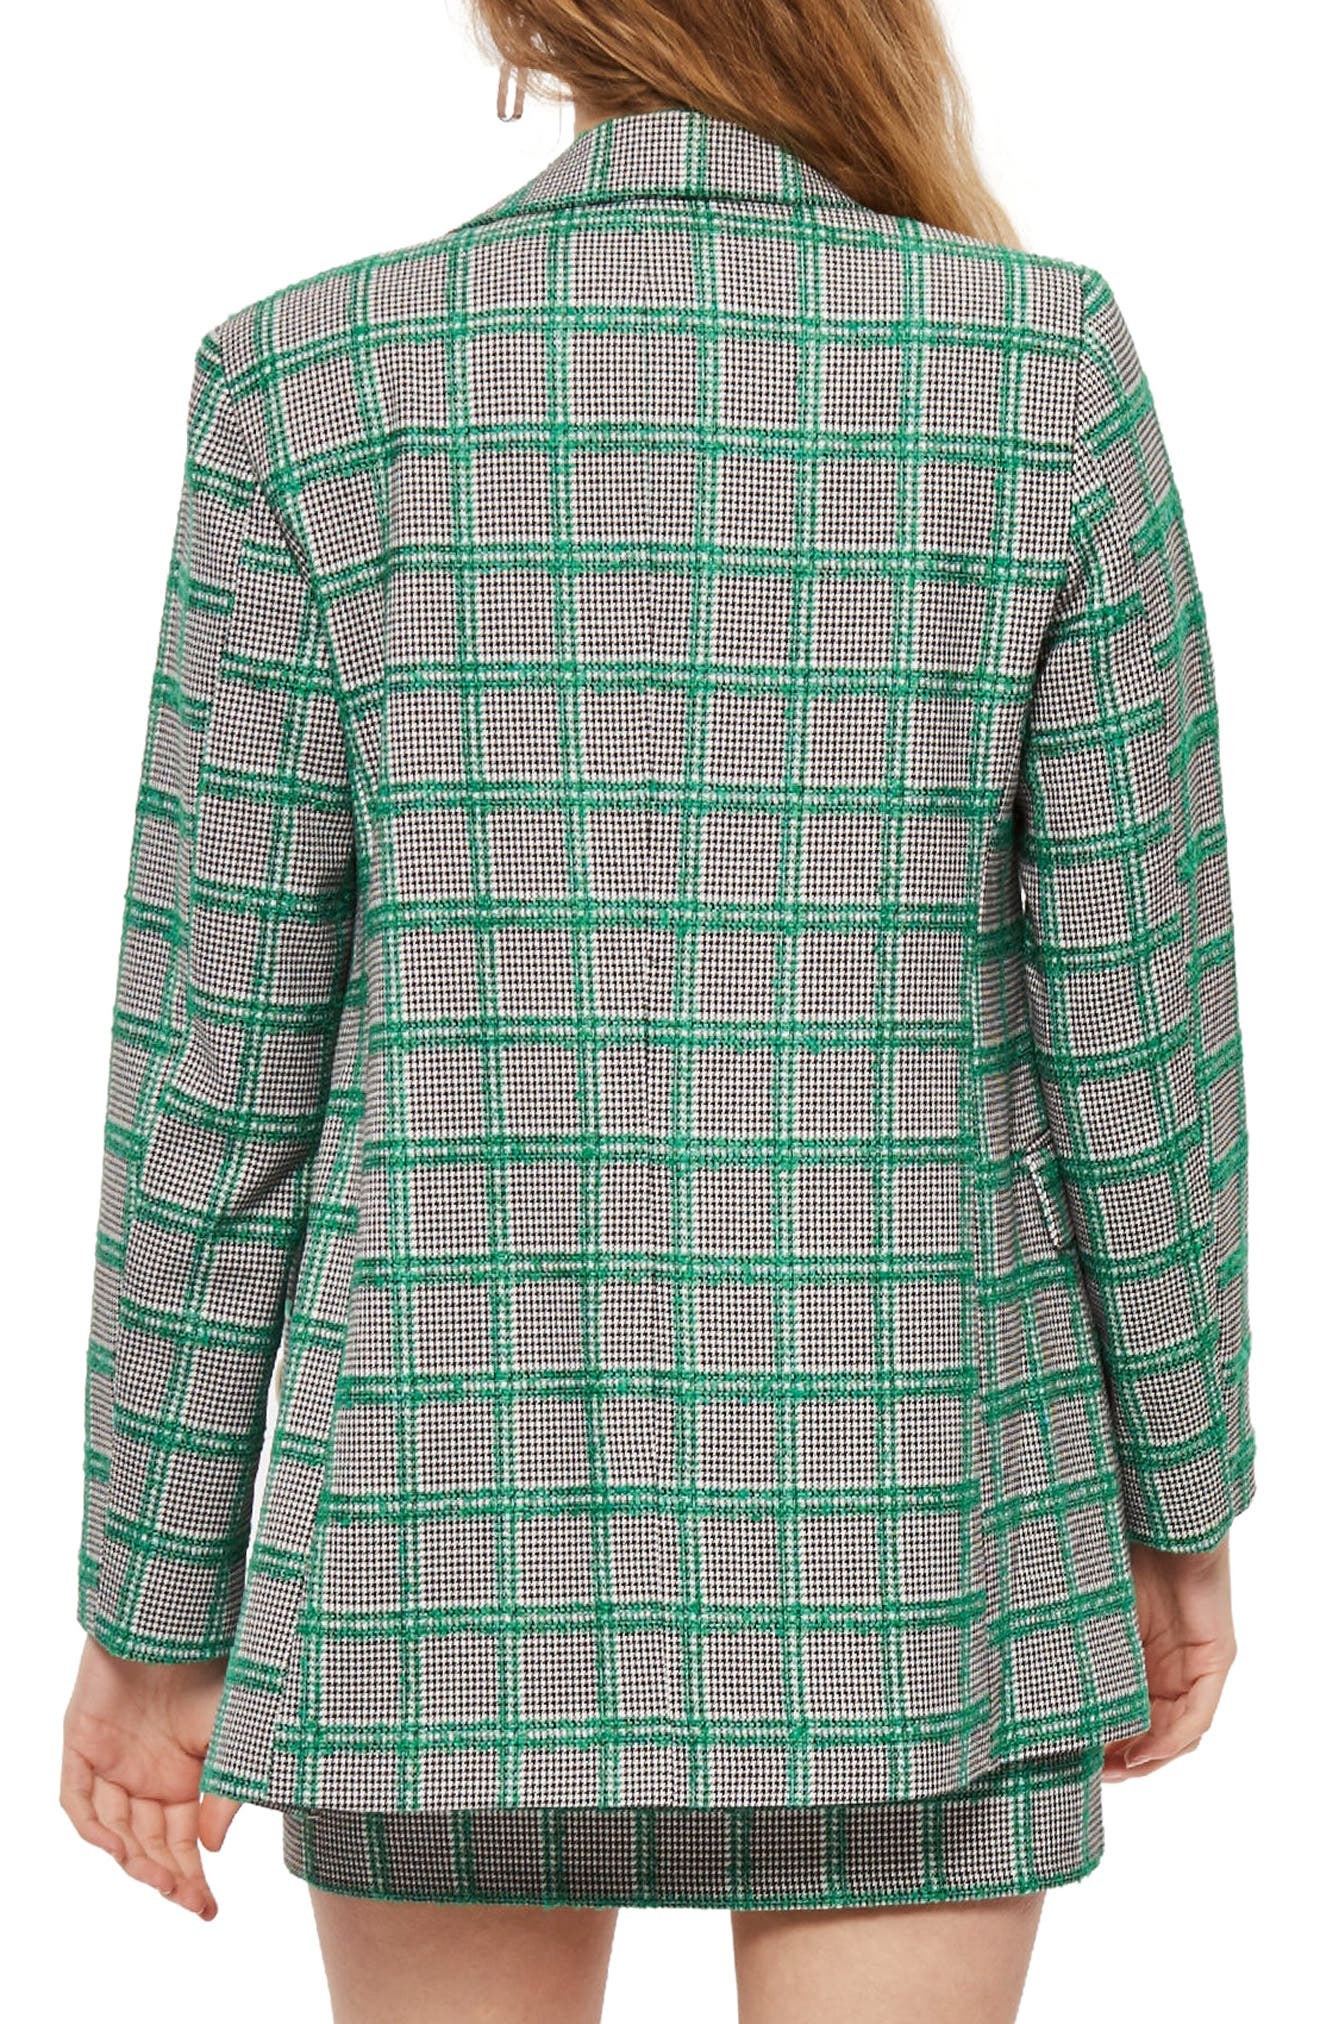 Double Breasted Windowpane Plaid Jacket,                             Alternate thumbnail 2, color,                             Green Multi